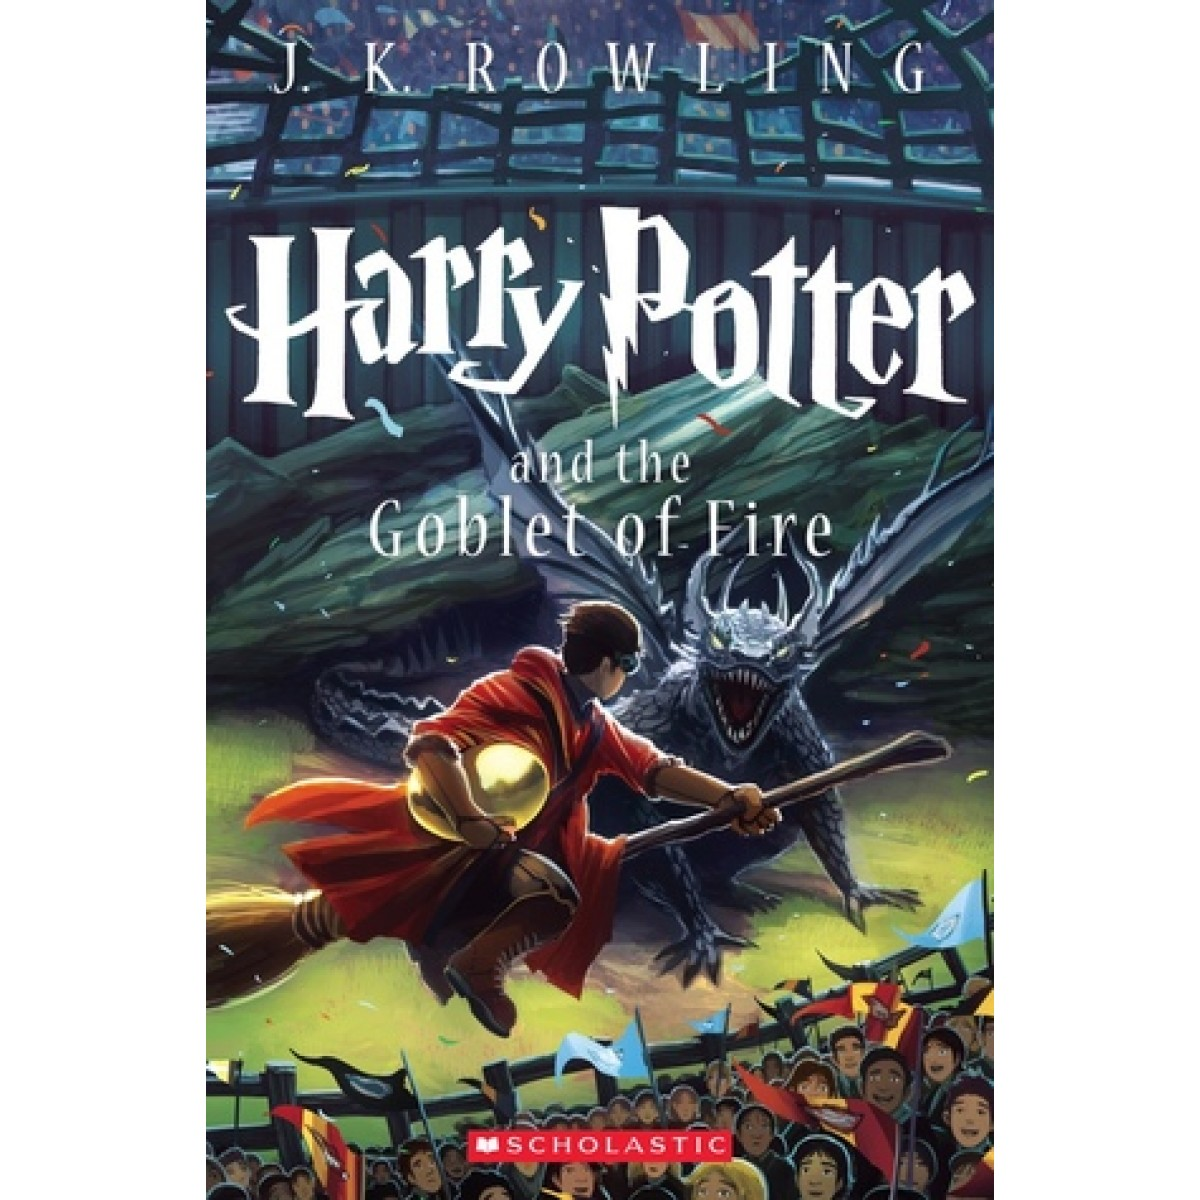 an analysis of jk rowlings harry porter and the goblet of fire Browse and read harry potter and the goblet of fire harry potter 4 by jk rowling harry potter and the goblet of fire harry potter 4 by jk rowling.